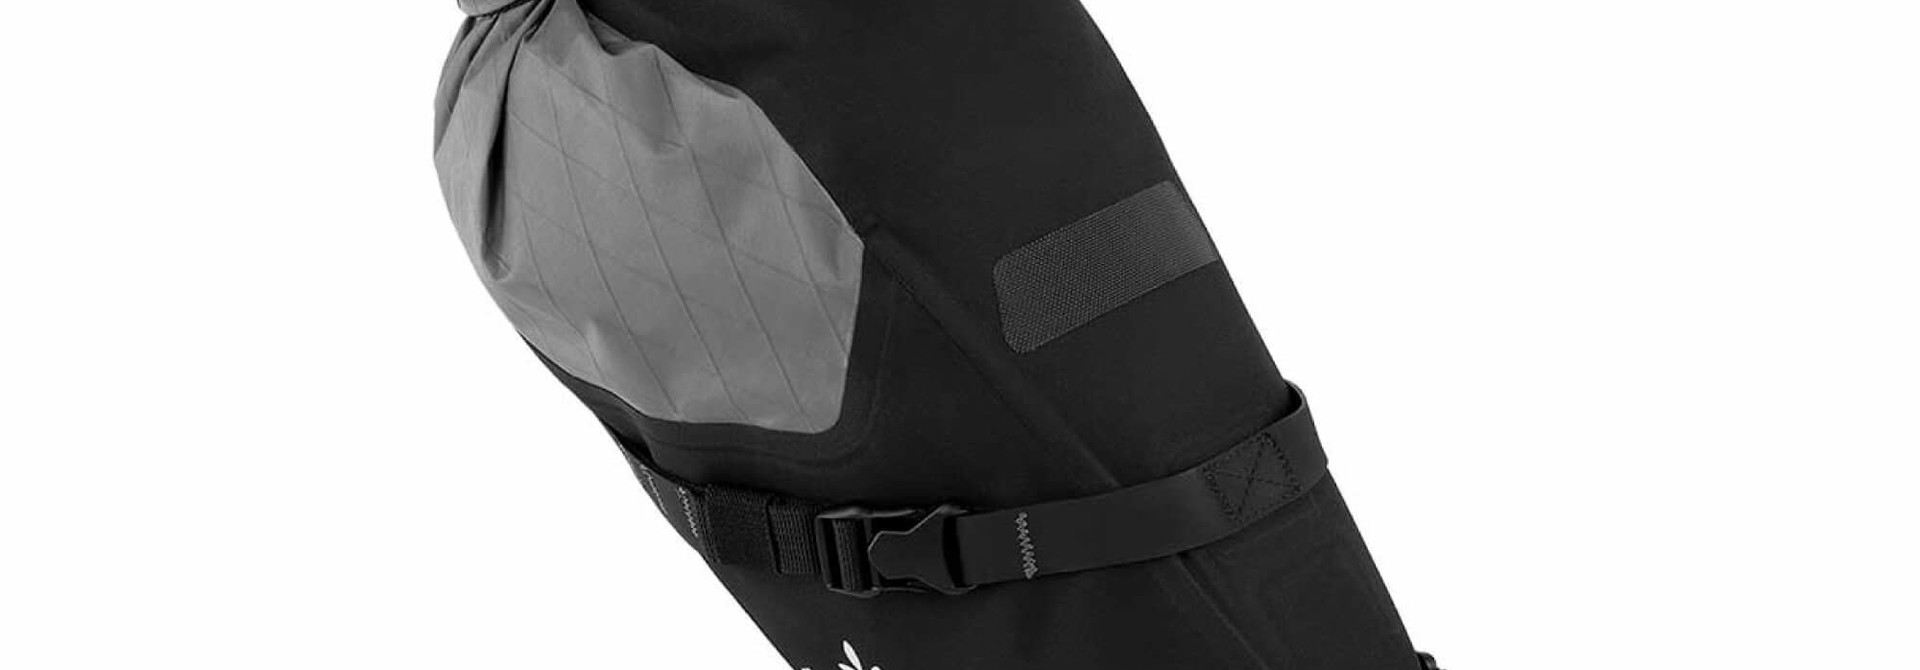 Backcountry2 Saddle Pack 4.5 L